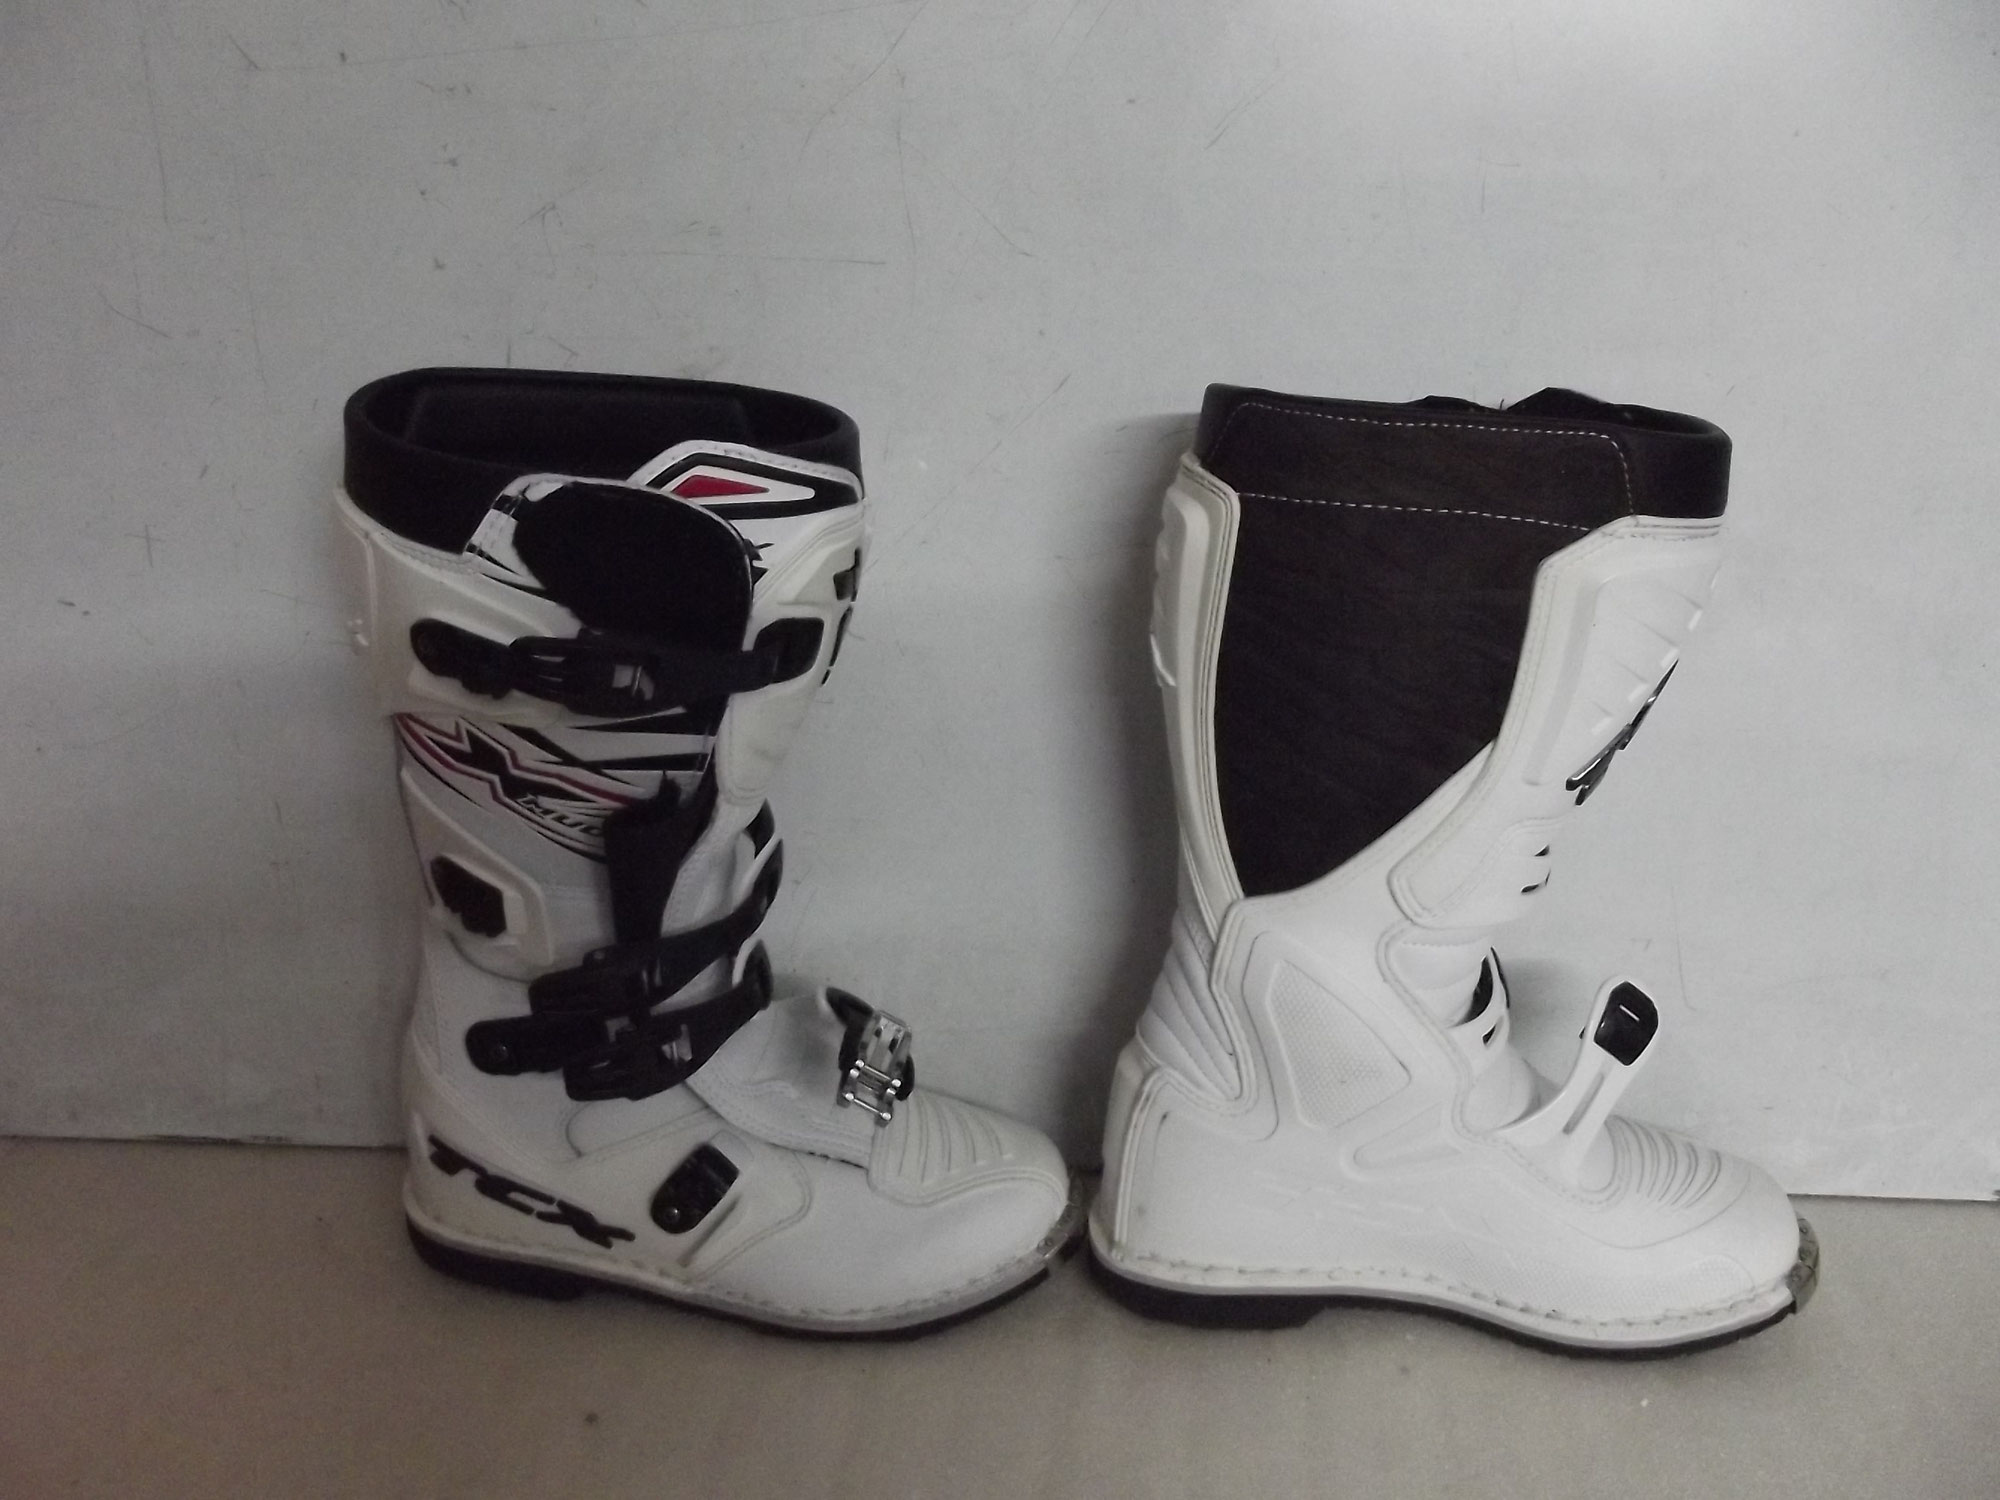 MOTO de CROSS BOTTES Site yannaccessmoto b76Ygfy